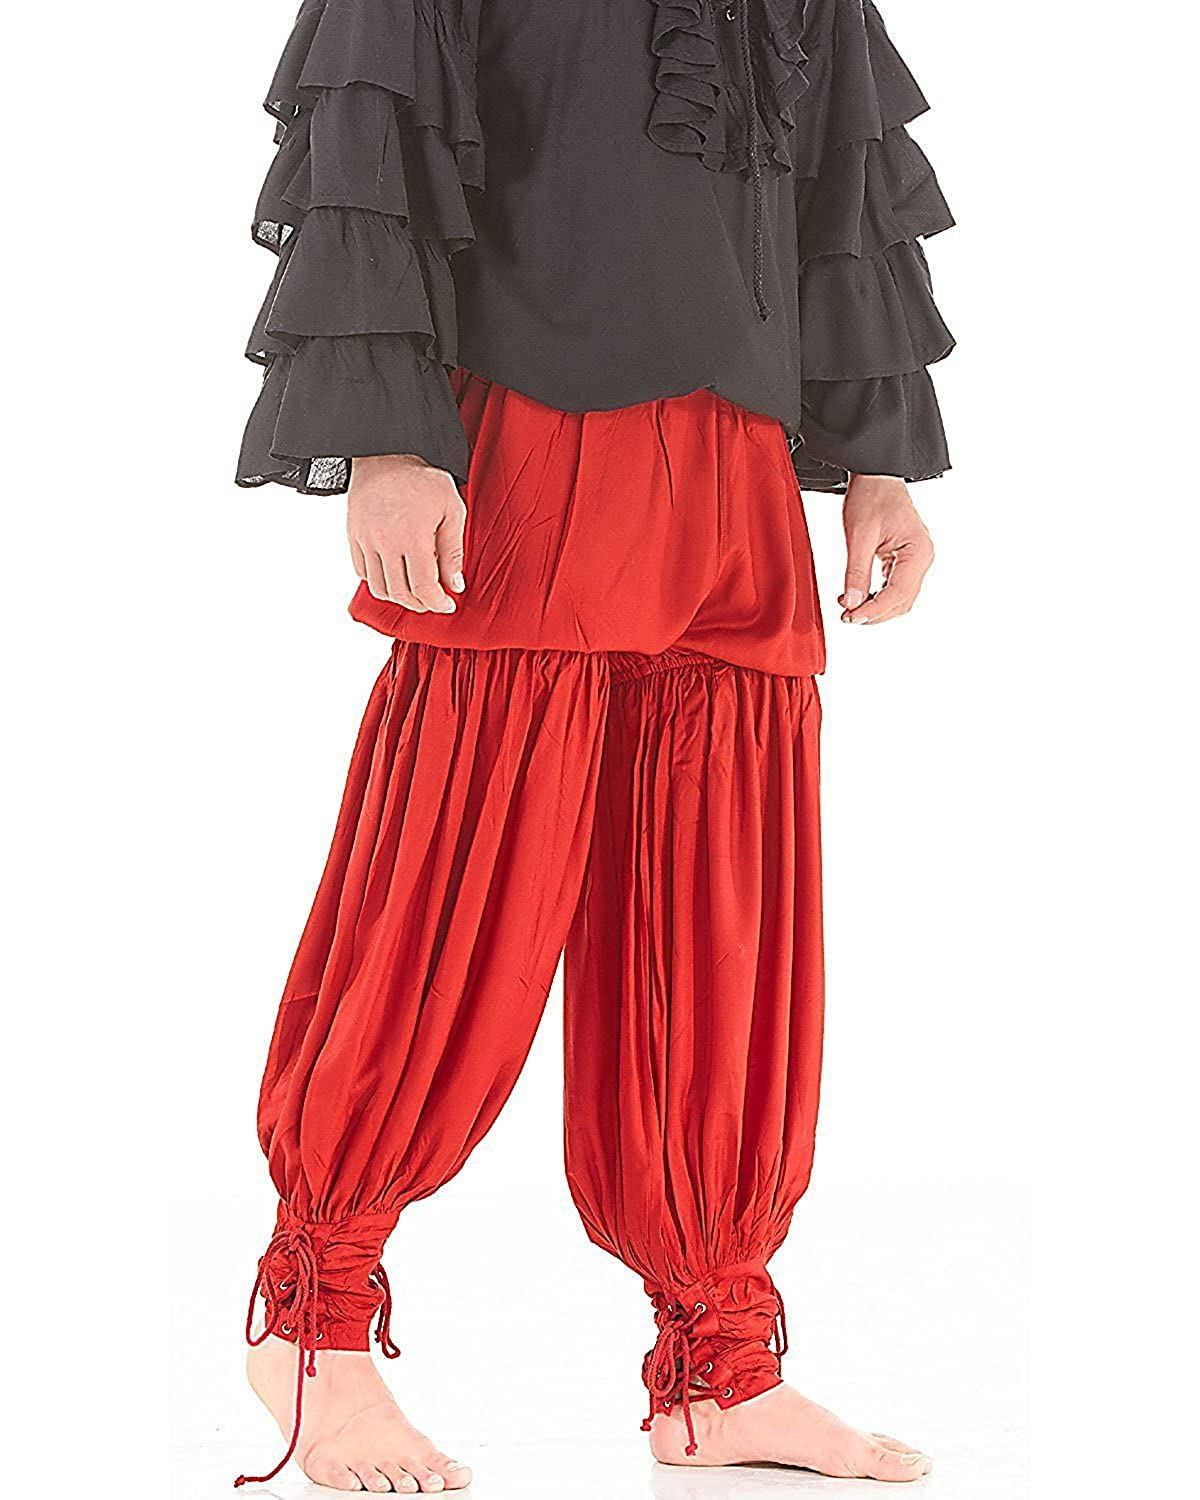 ThePirateDressing Medieval Renaissance Pirate Cosplay Costume Swordsman Pants Trouser C1054-Parent